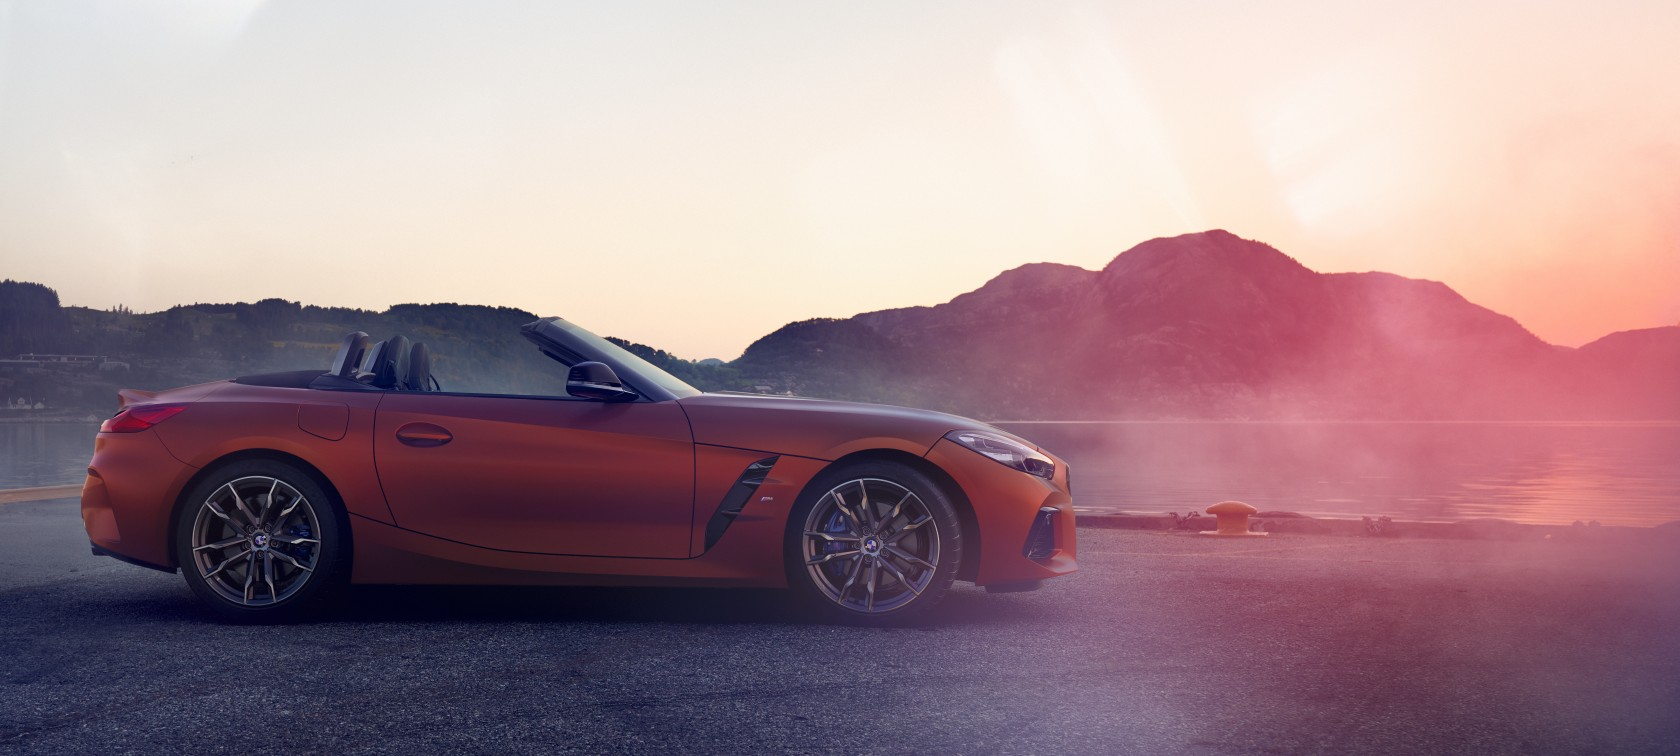 BMW Z4 First Edition standing in curve in front of mountain landscape